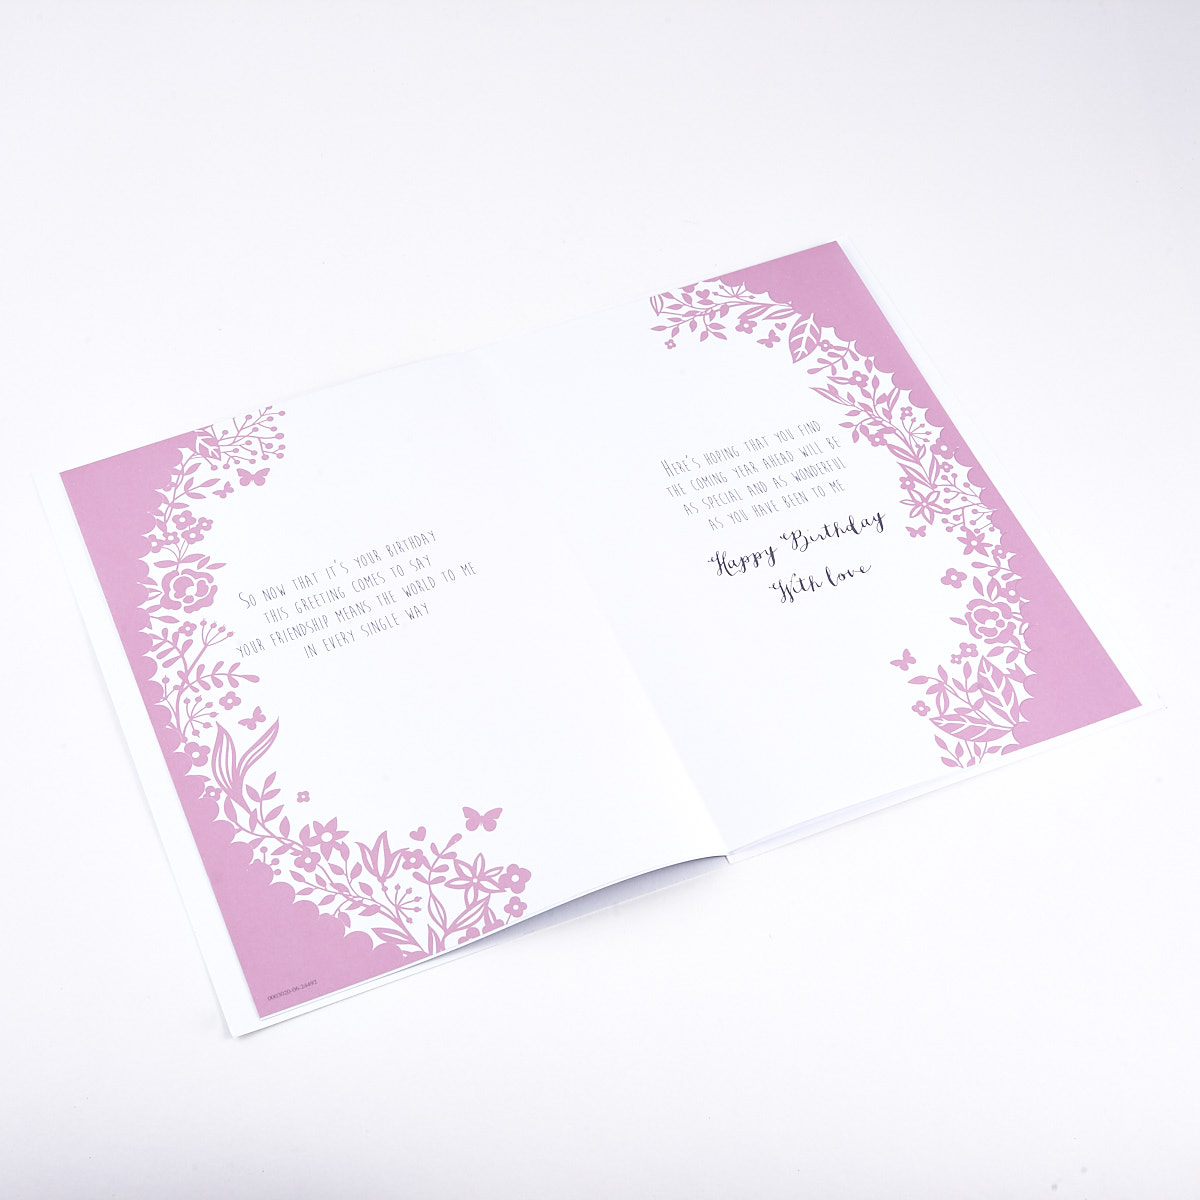 Birthday Card - Special Friend, Floral Border